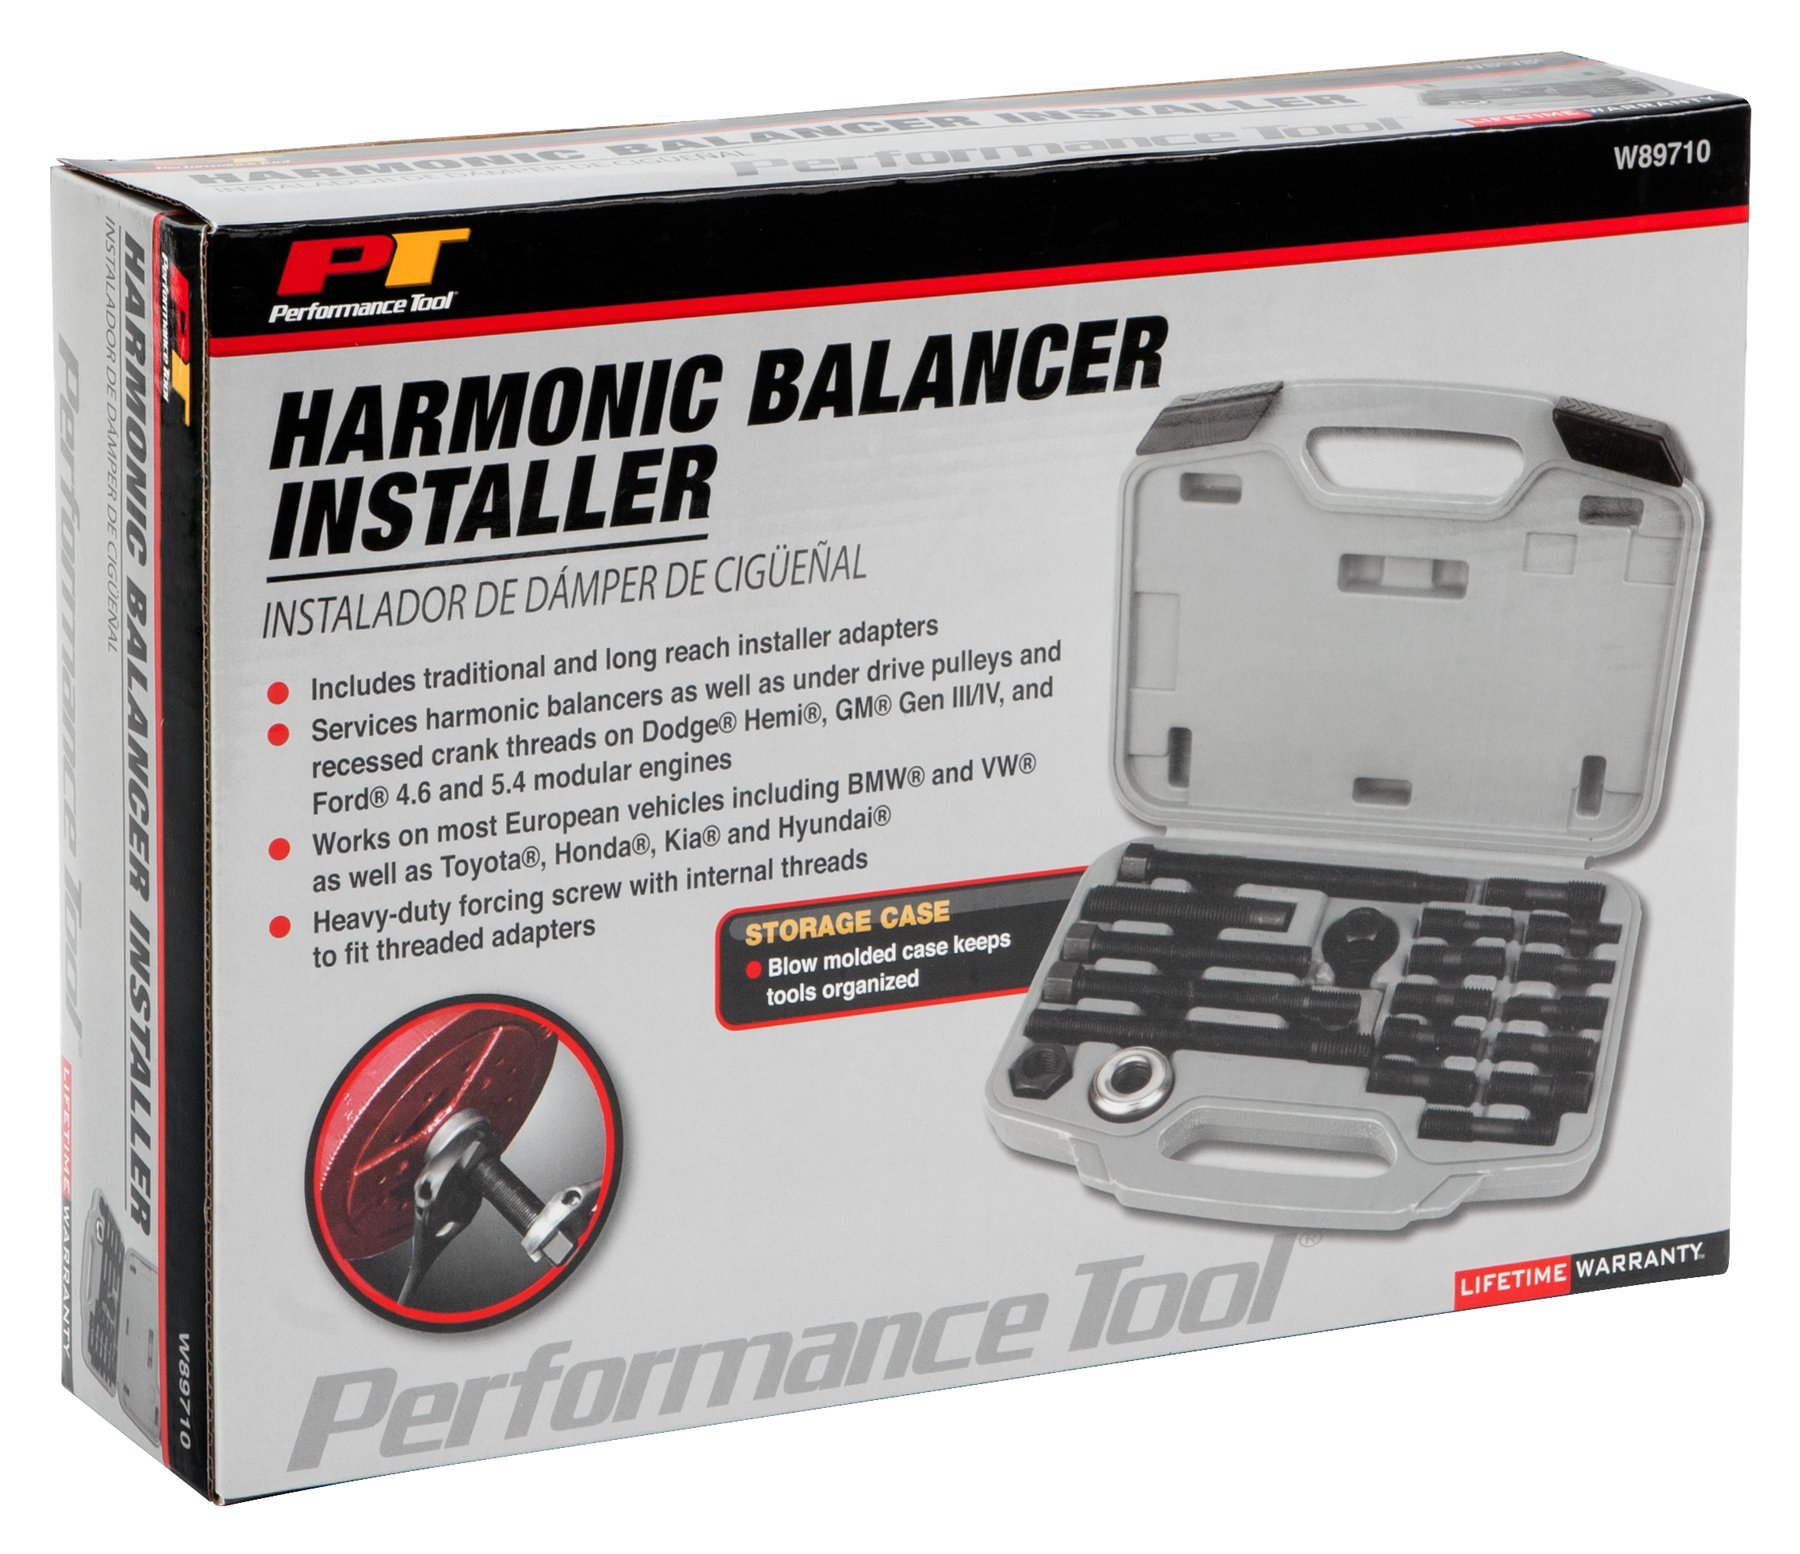 Performance Tool W89710 Harmonic Balancer Installer by Performance Tool (Image #1)